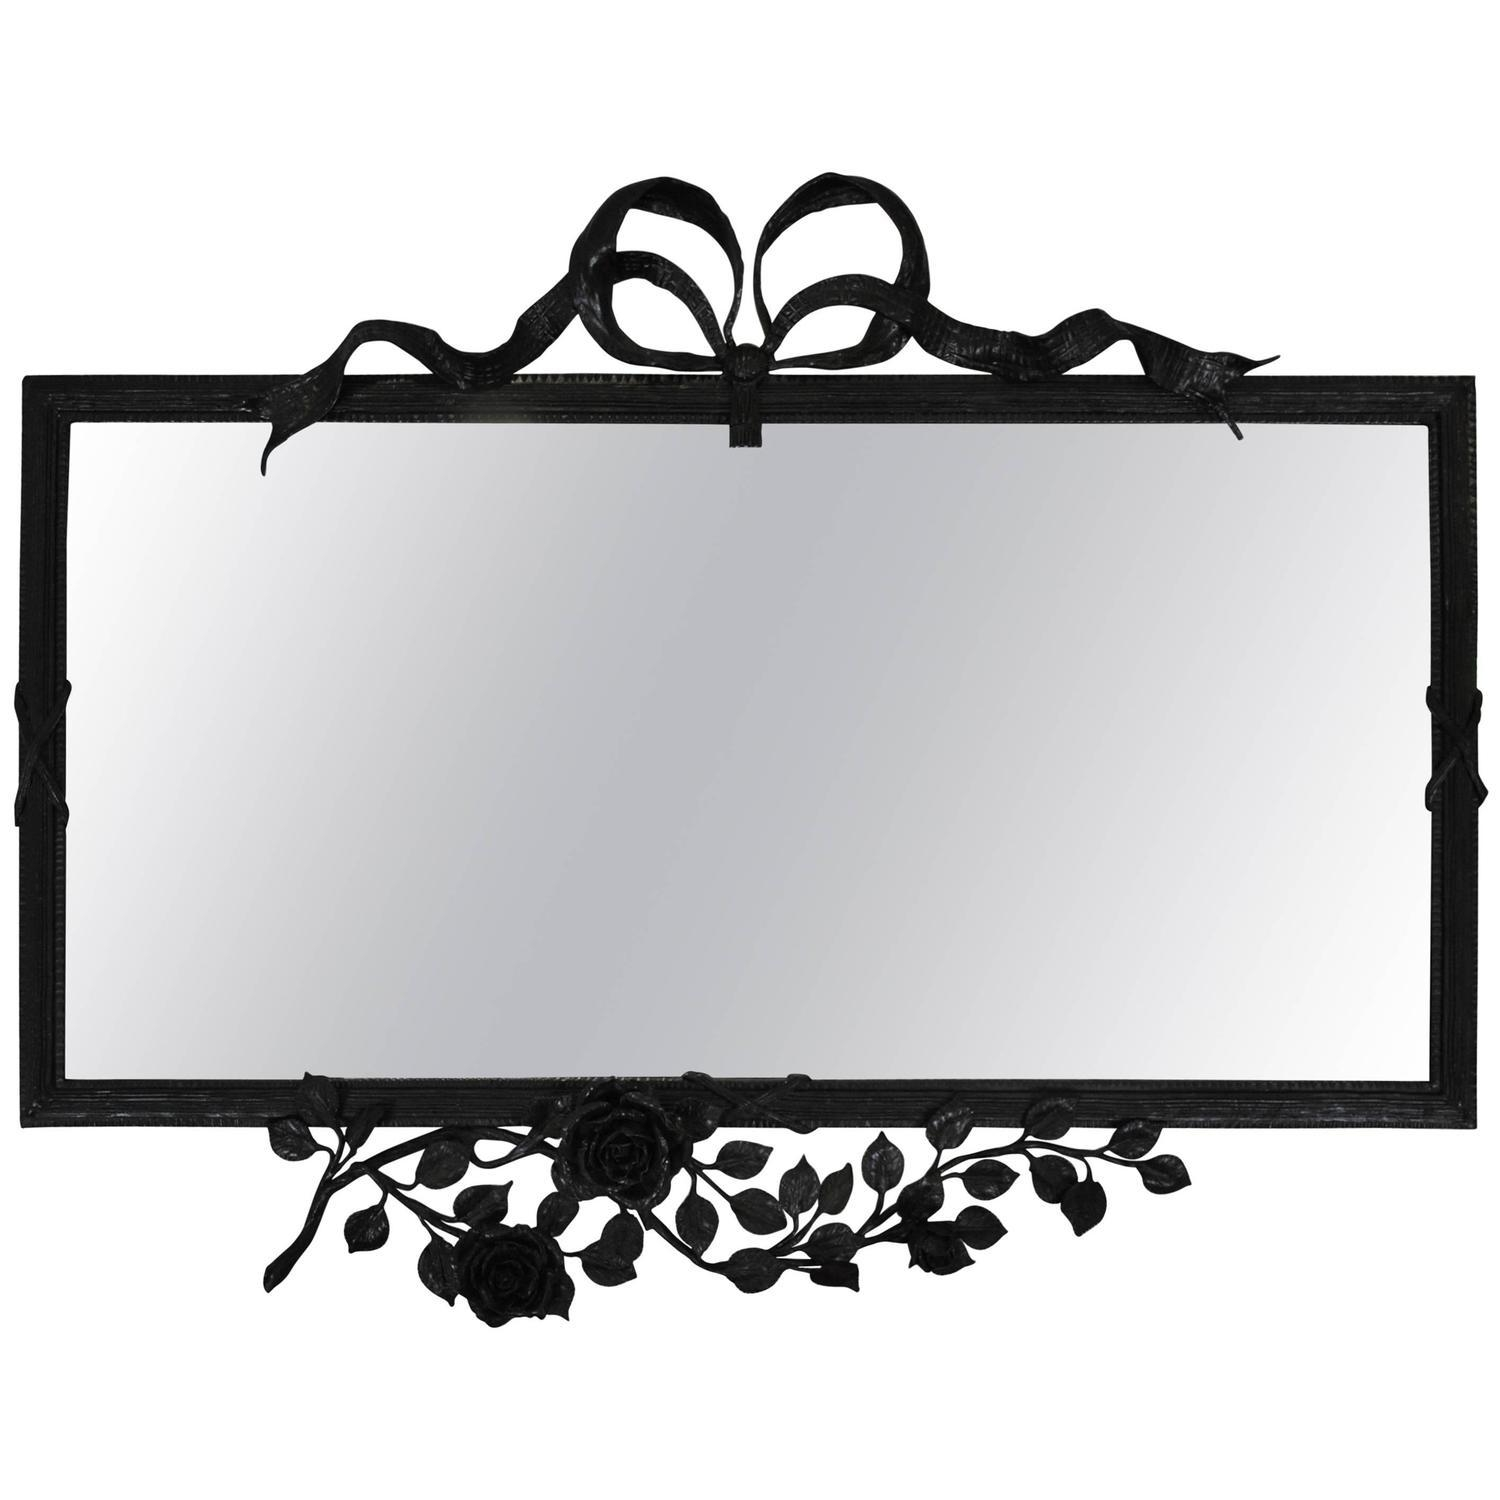 Wrought Iron Mirrors – 91 For Sale At 1Stdibs With Regard To Black Wrought Iron Mirrors (Image 19 of 20)